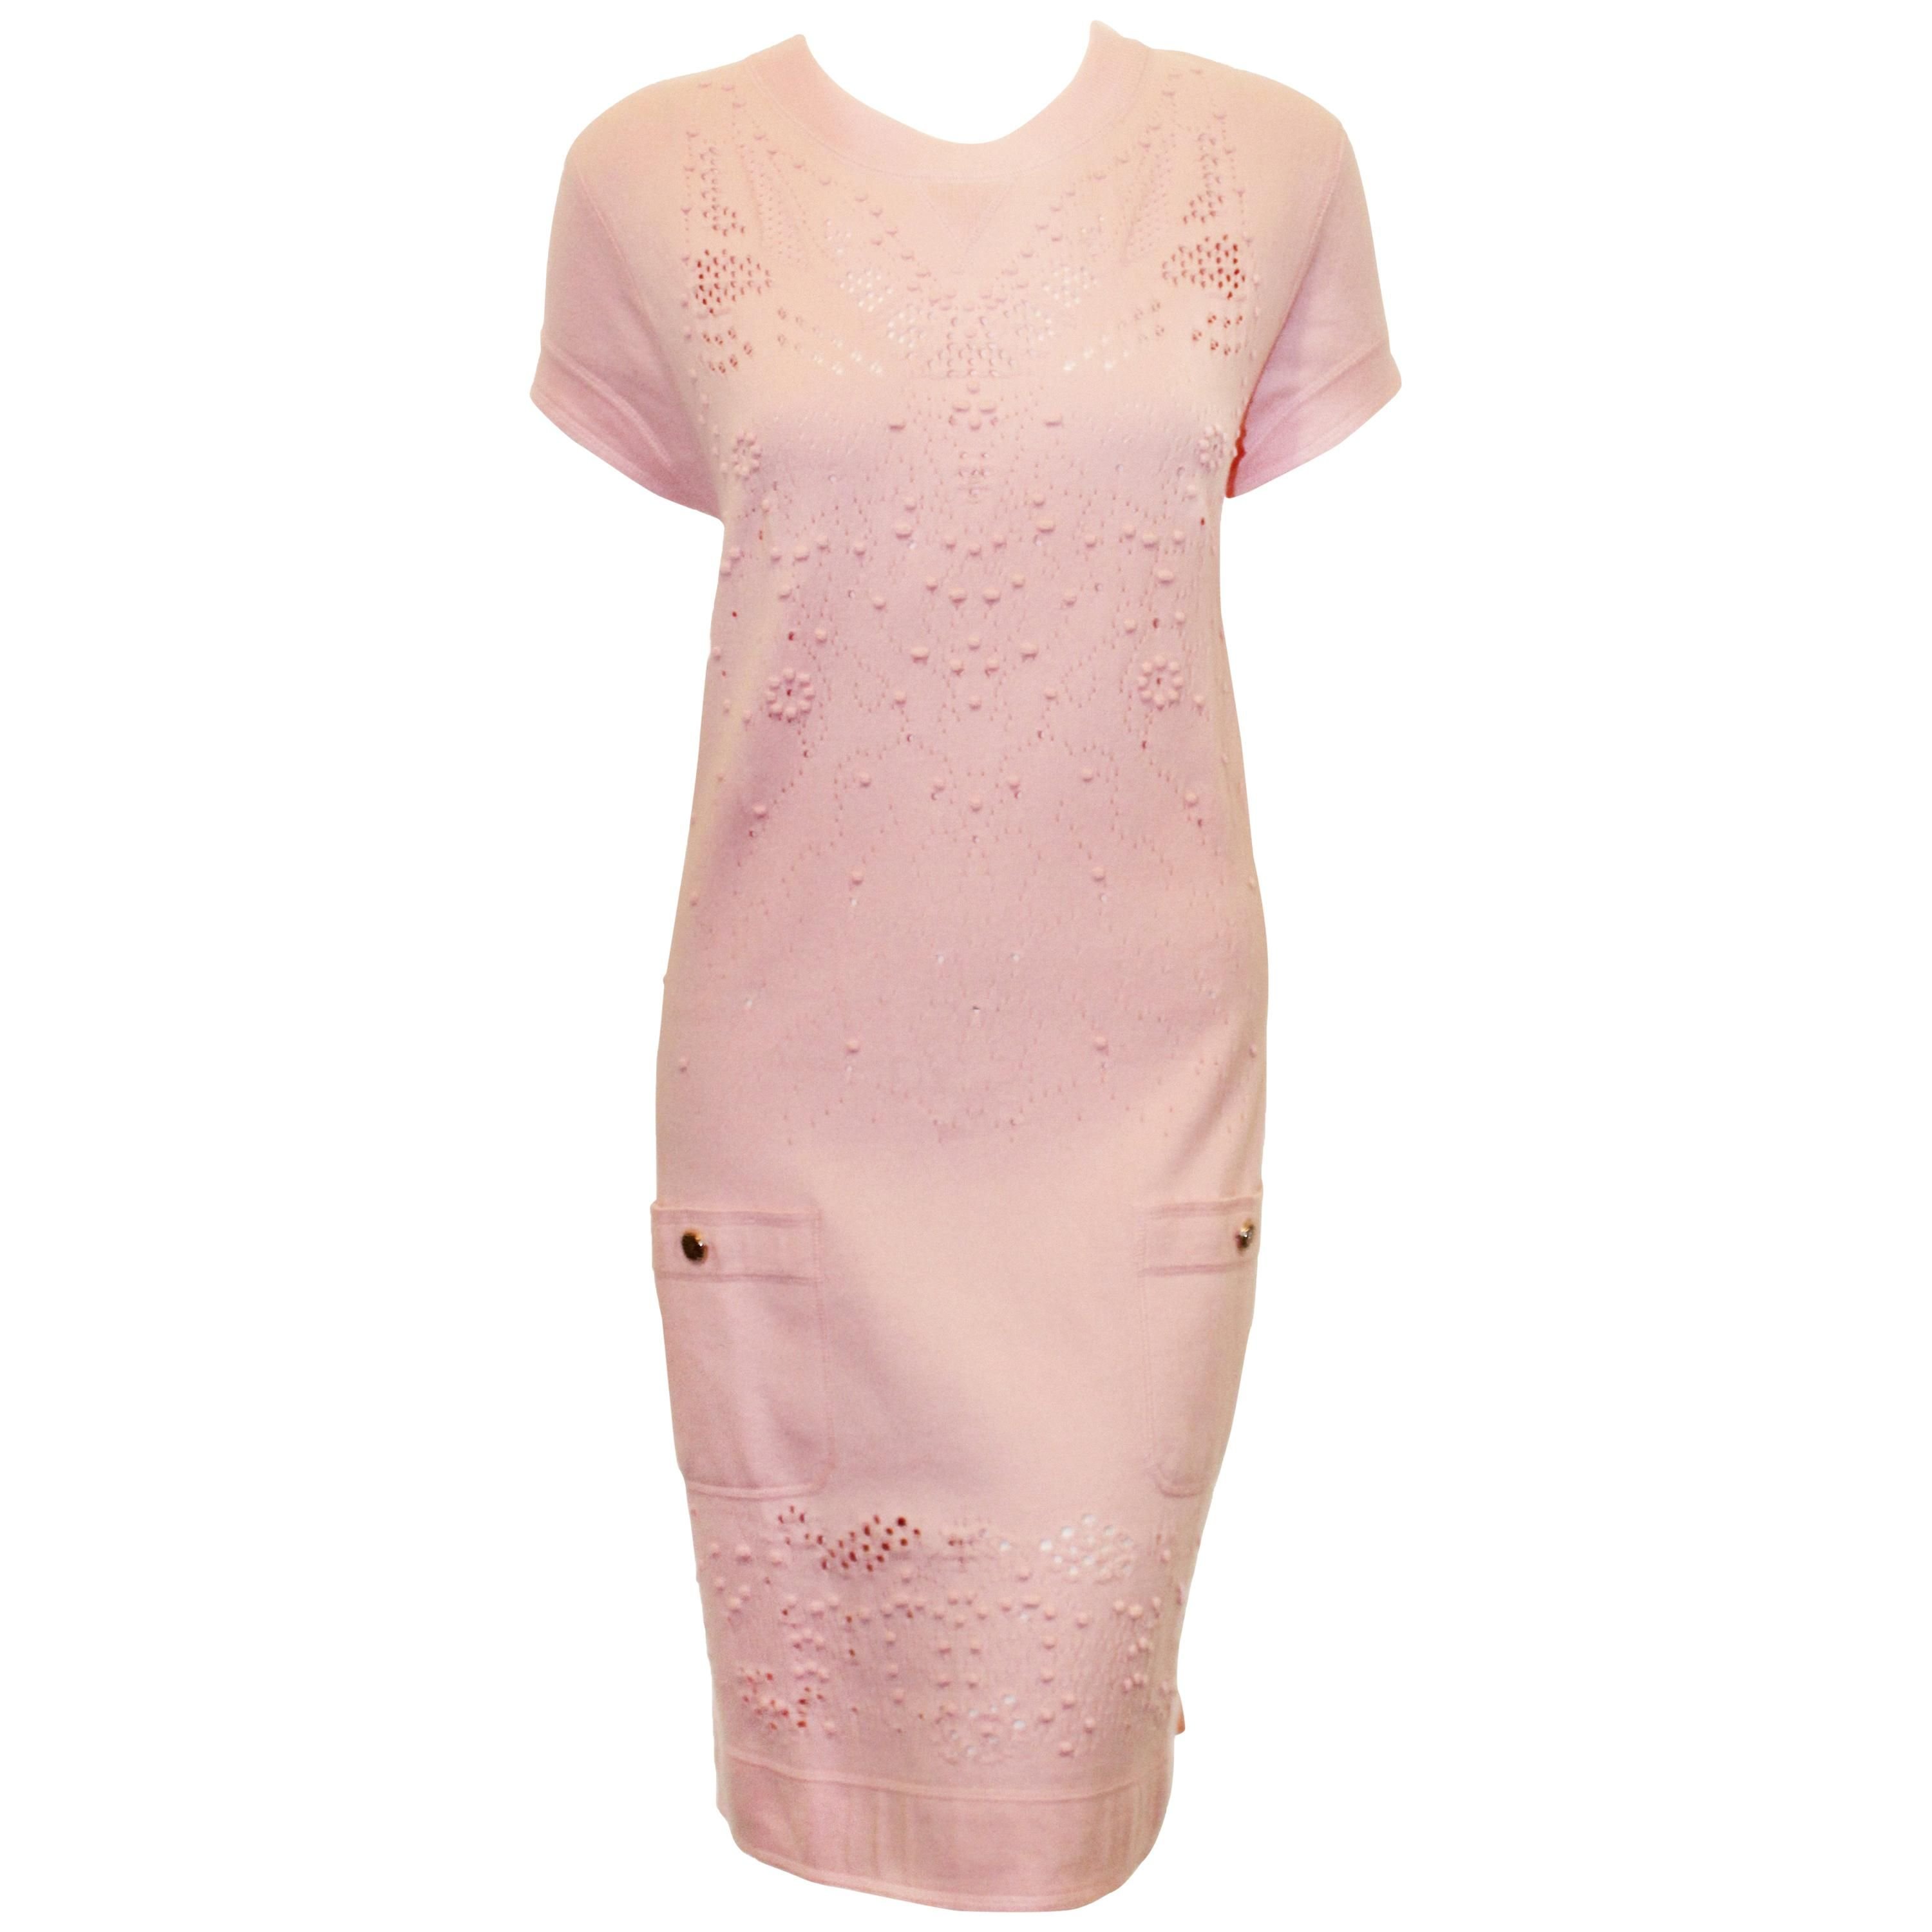 336d5bb5202 Chanel Pink Cap Sleeve Cotton Chemise Dress W  Patch Pockets For Sale at  1stdibs